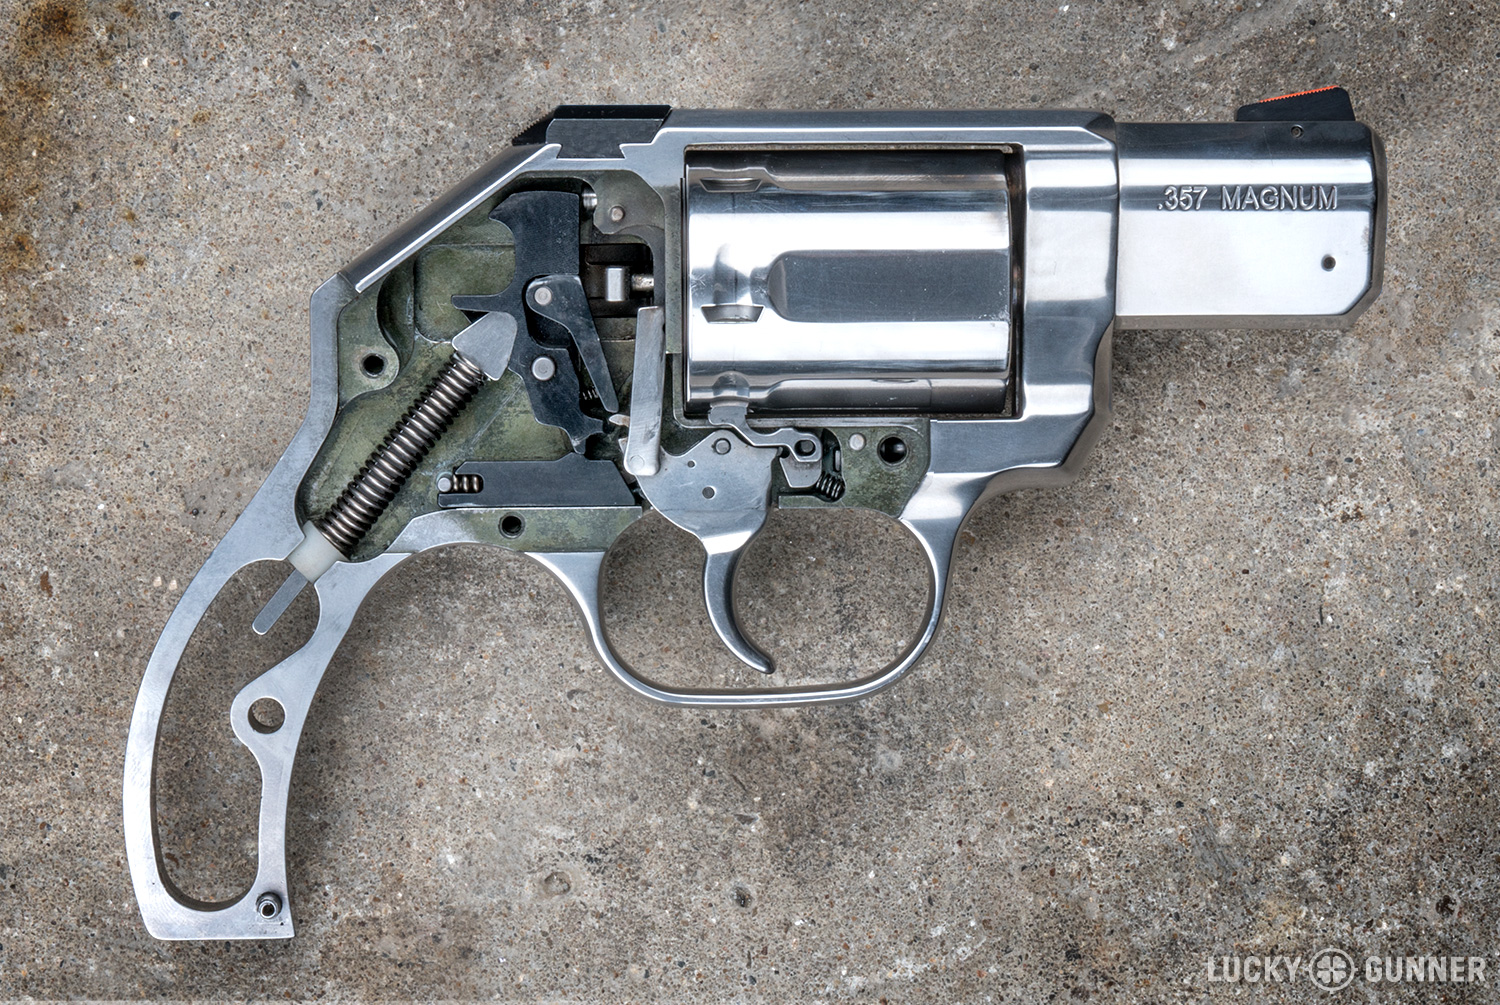 Review Kimber K6s 357 Magnum Snub Nose Lucky Gunner Lounge